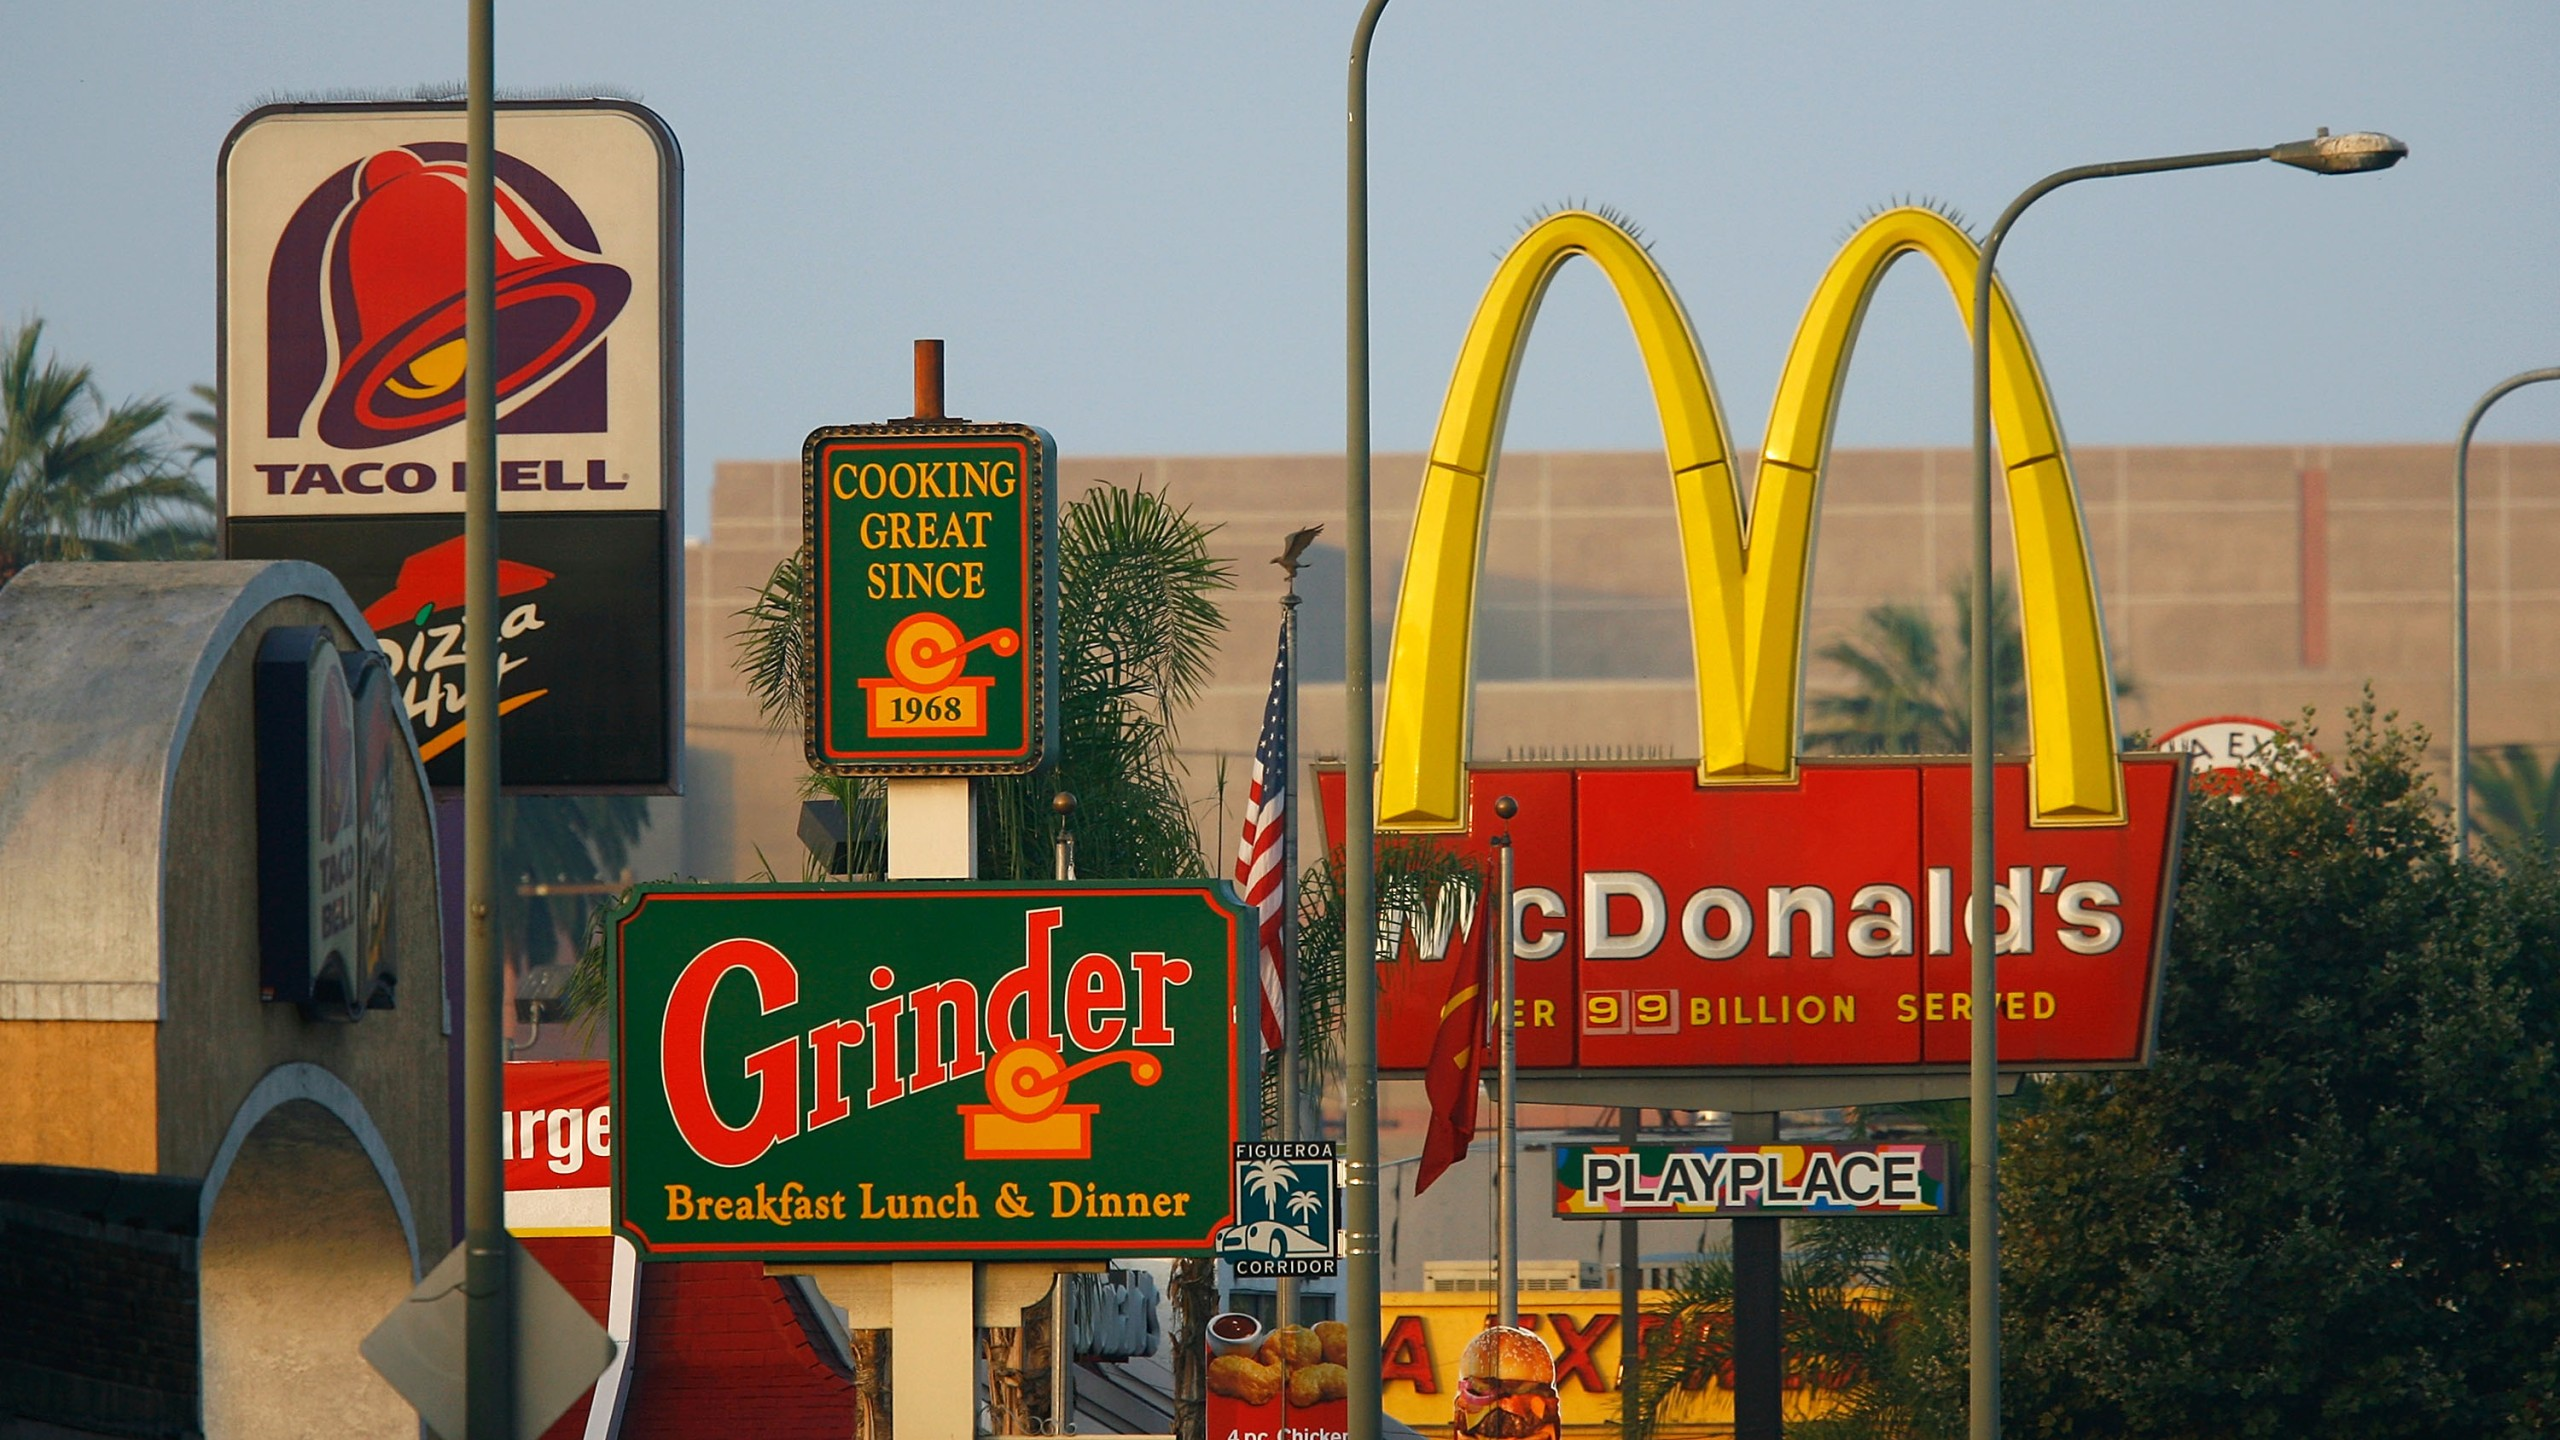 Signs for Taco Bell, Grinder, McDonald's and Panda Express fast-food restaurants line the streets in the Figueroa Corridor area of South Los Angeles on July 24, 2008. (Credit: David McNew / Getty Images)